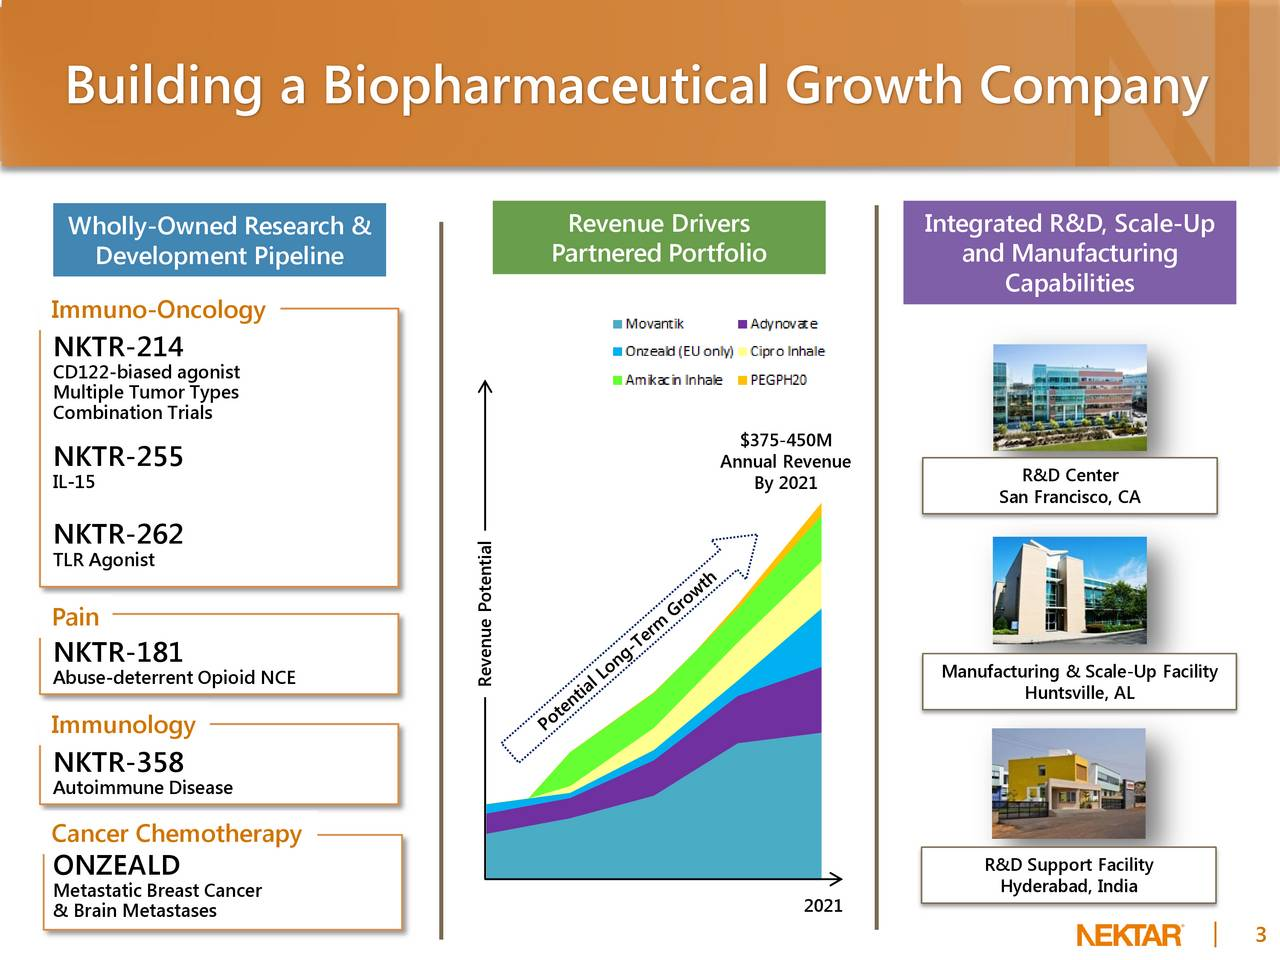 Wholly-Owned Research & Revenue Drivers Integrated R&D, Scale-Up Development Pipeline Partnered Portfolio and Manufacturing Capabilities Immuno-Oncology NKTR-214 CD122-biased agonist Multiple Tumor Types Combination Trials $375-450M NKTR-255 Annual Revenue IL-15 By 2021 R&D Center San Francisco, CA NKTR-262 TLR Agonist Pain NKTR-181 Abuse-deterrent Opioid NCE Manufacturing & Scale-Up Facility Revenue Potential Huntsville, AL Immunology NKTR-358 Autoimmune Disease Cancer Chemotherapy ONZEALD R&D Support Facility Metastatic Breast Cancer Hyderabad, India & Brain Metastases 2021 3